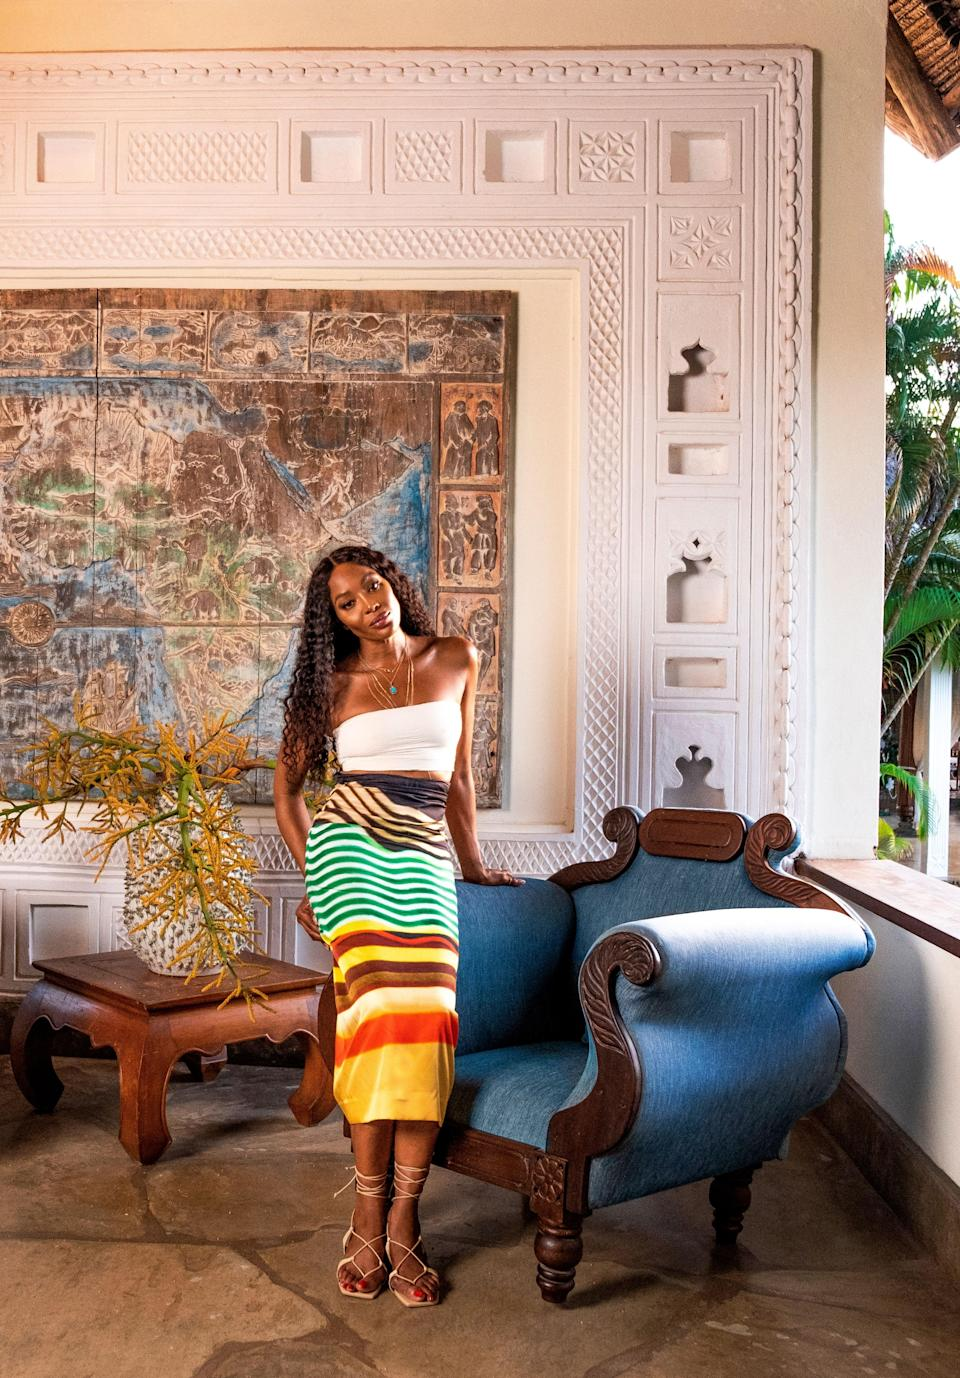 Naomi Campbell, wearing a Jade Swim bandeau top, Dries van Noten skirt, and Cult Gaia sandals, in the entrance area of her Kenyan getaway. On wall, a Bas-relief of Africa by local artist Armando Tanzini. Fashion styling by Carlos Nazario.